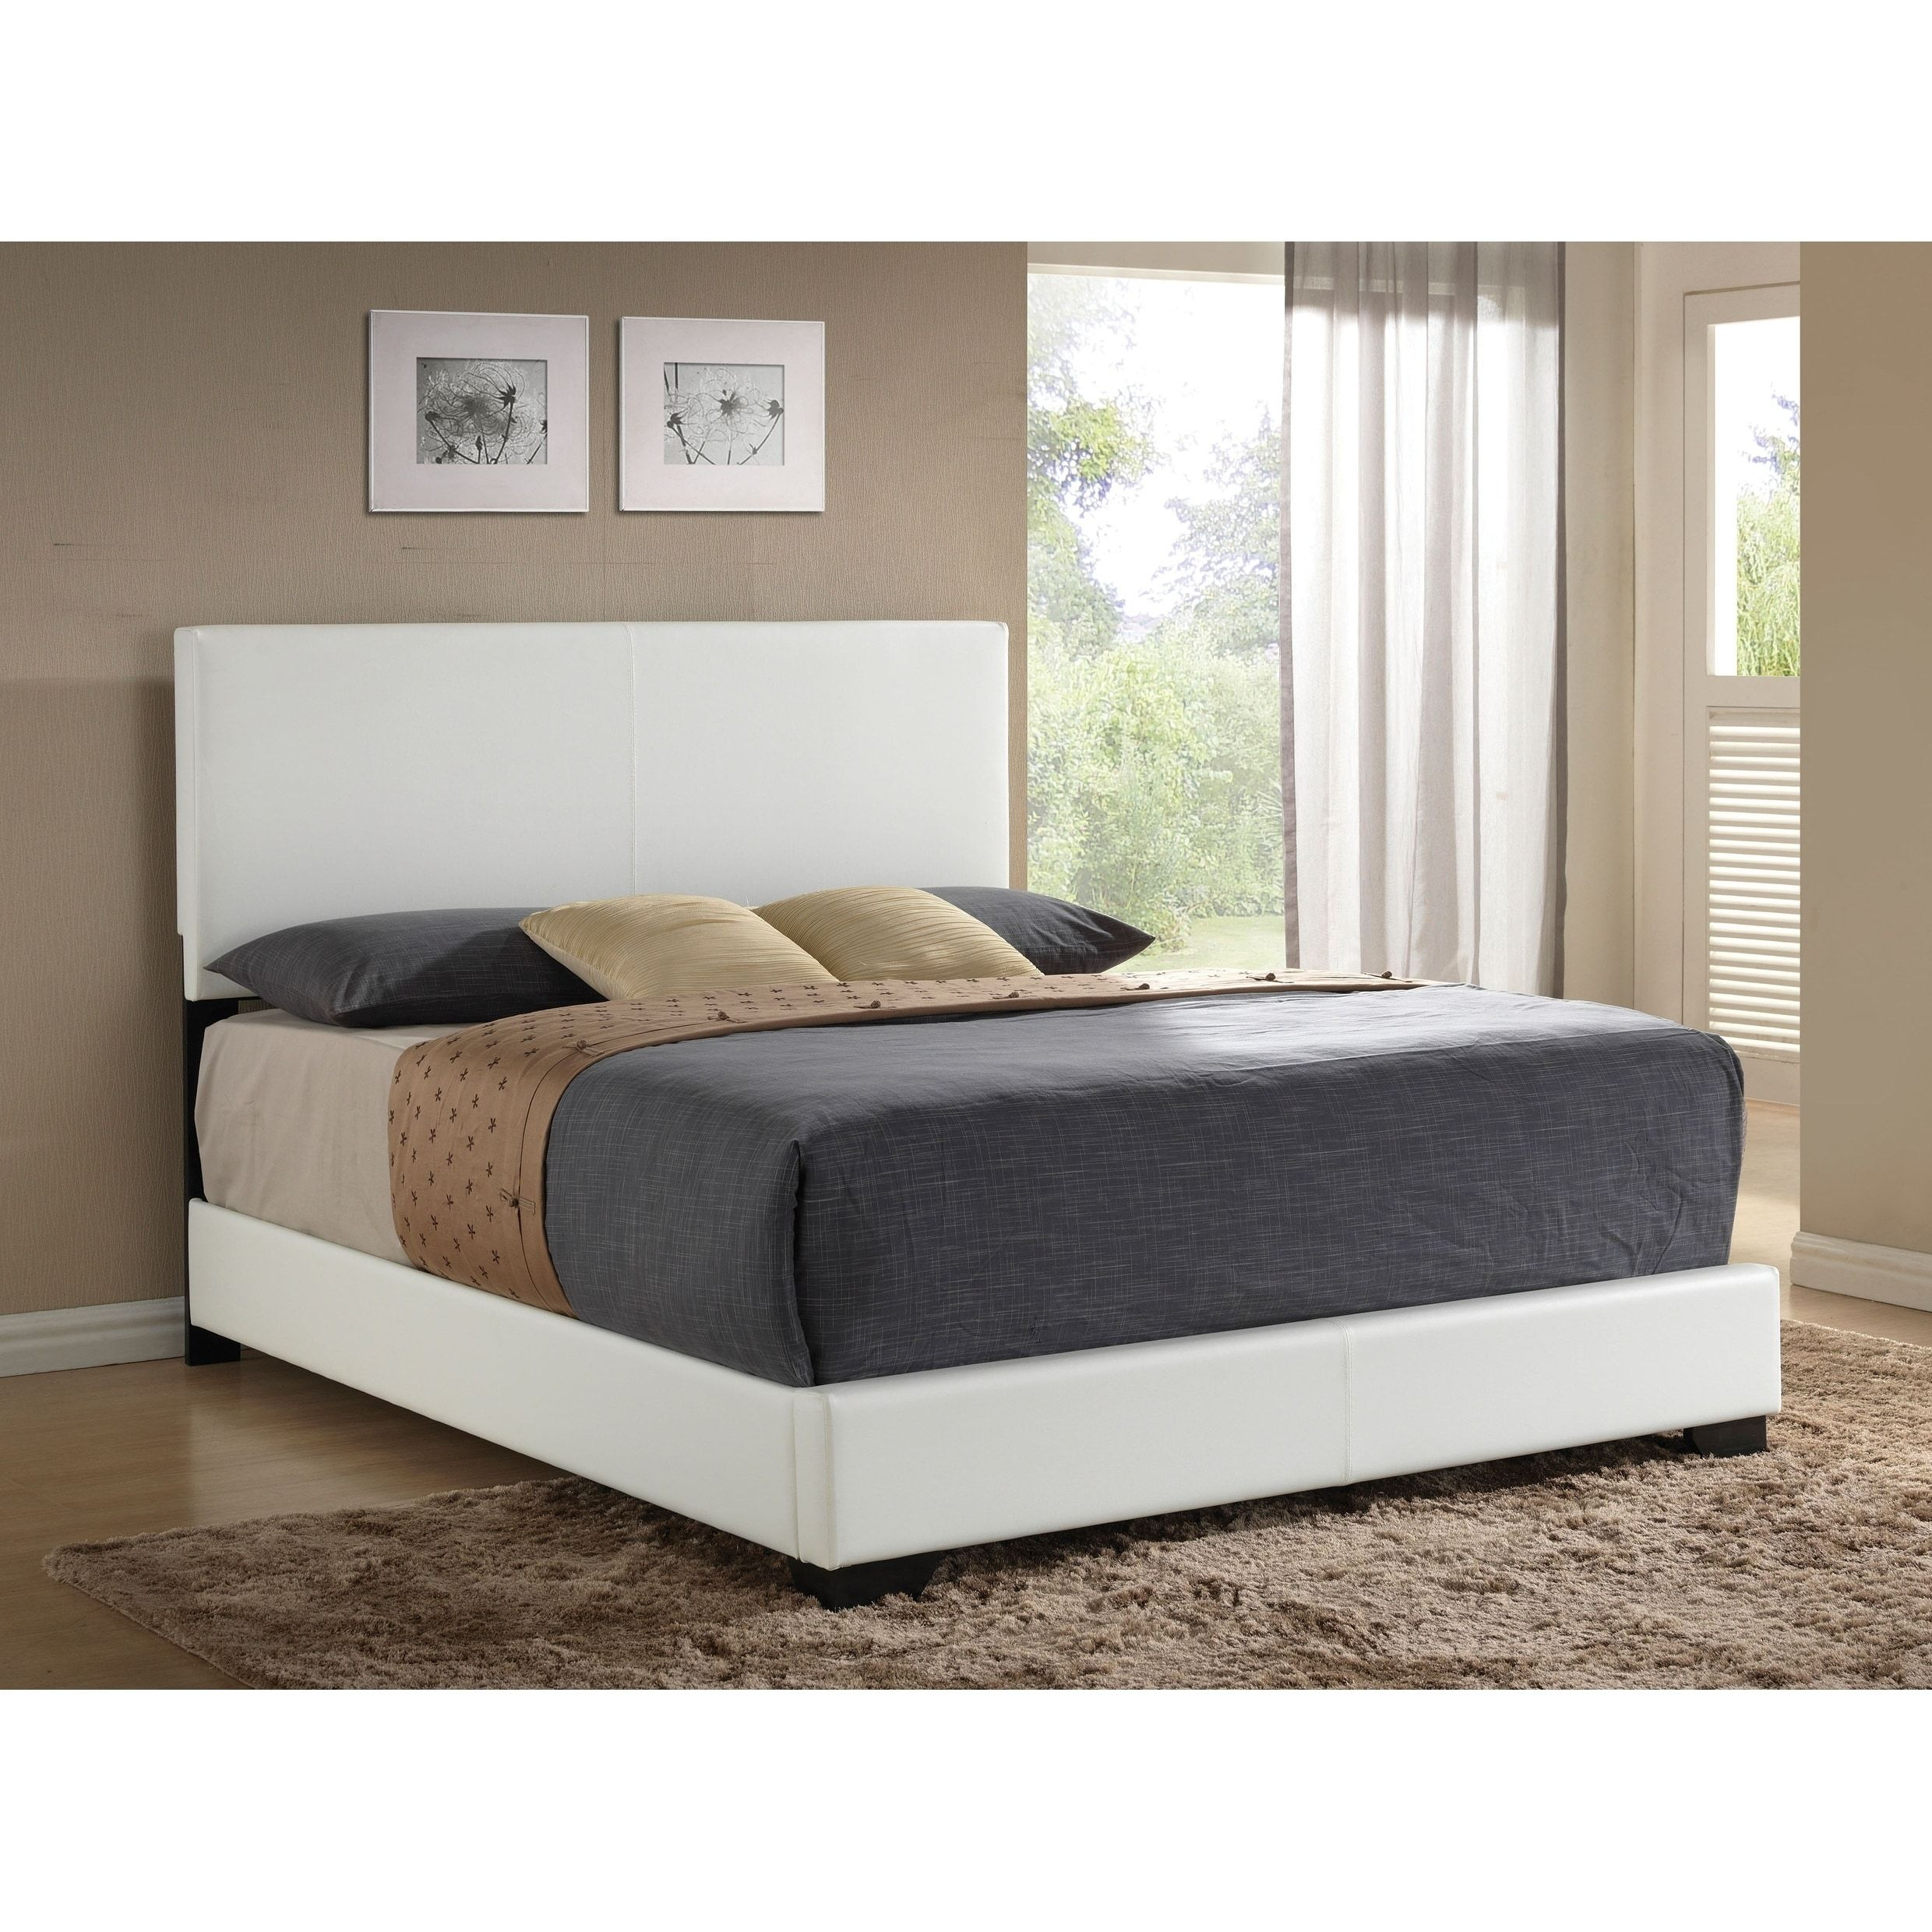 Ireland White PU Bed (King), Acme Upholstered bed frame